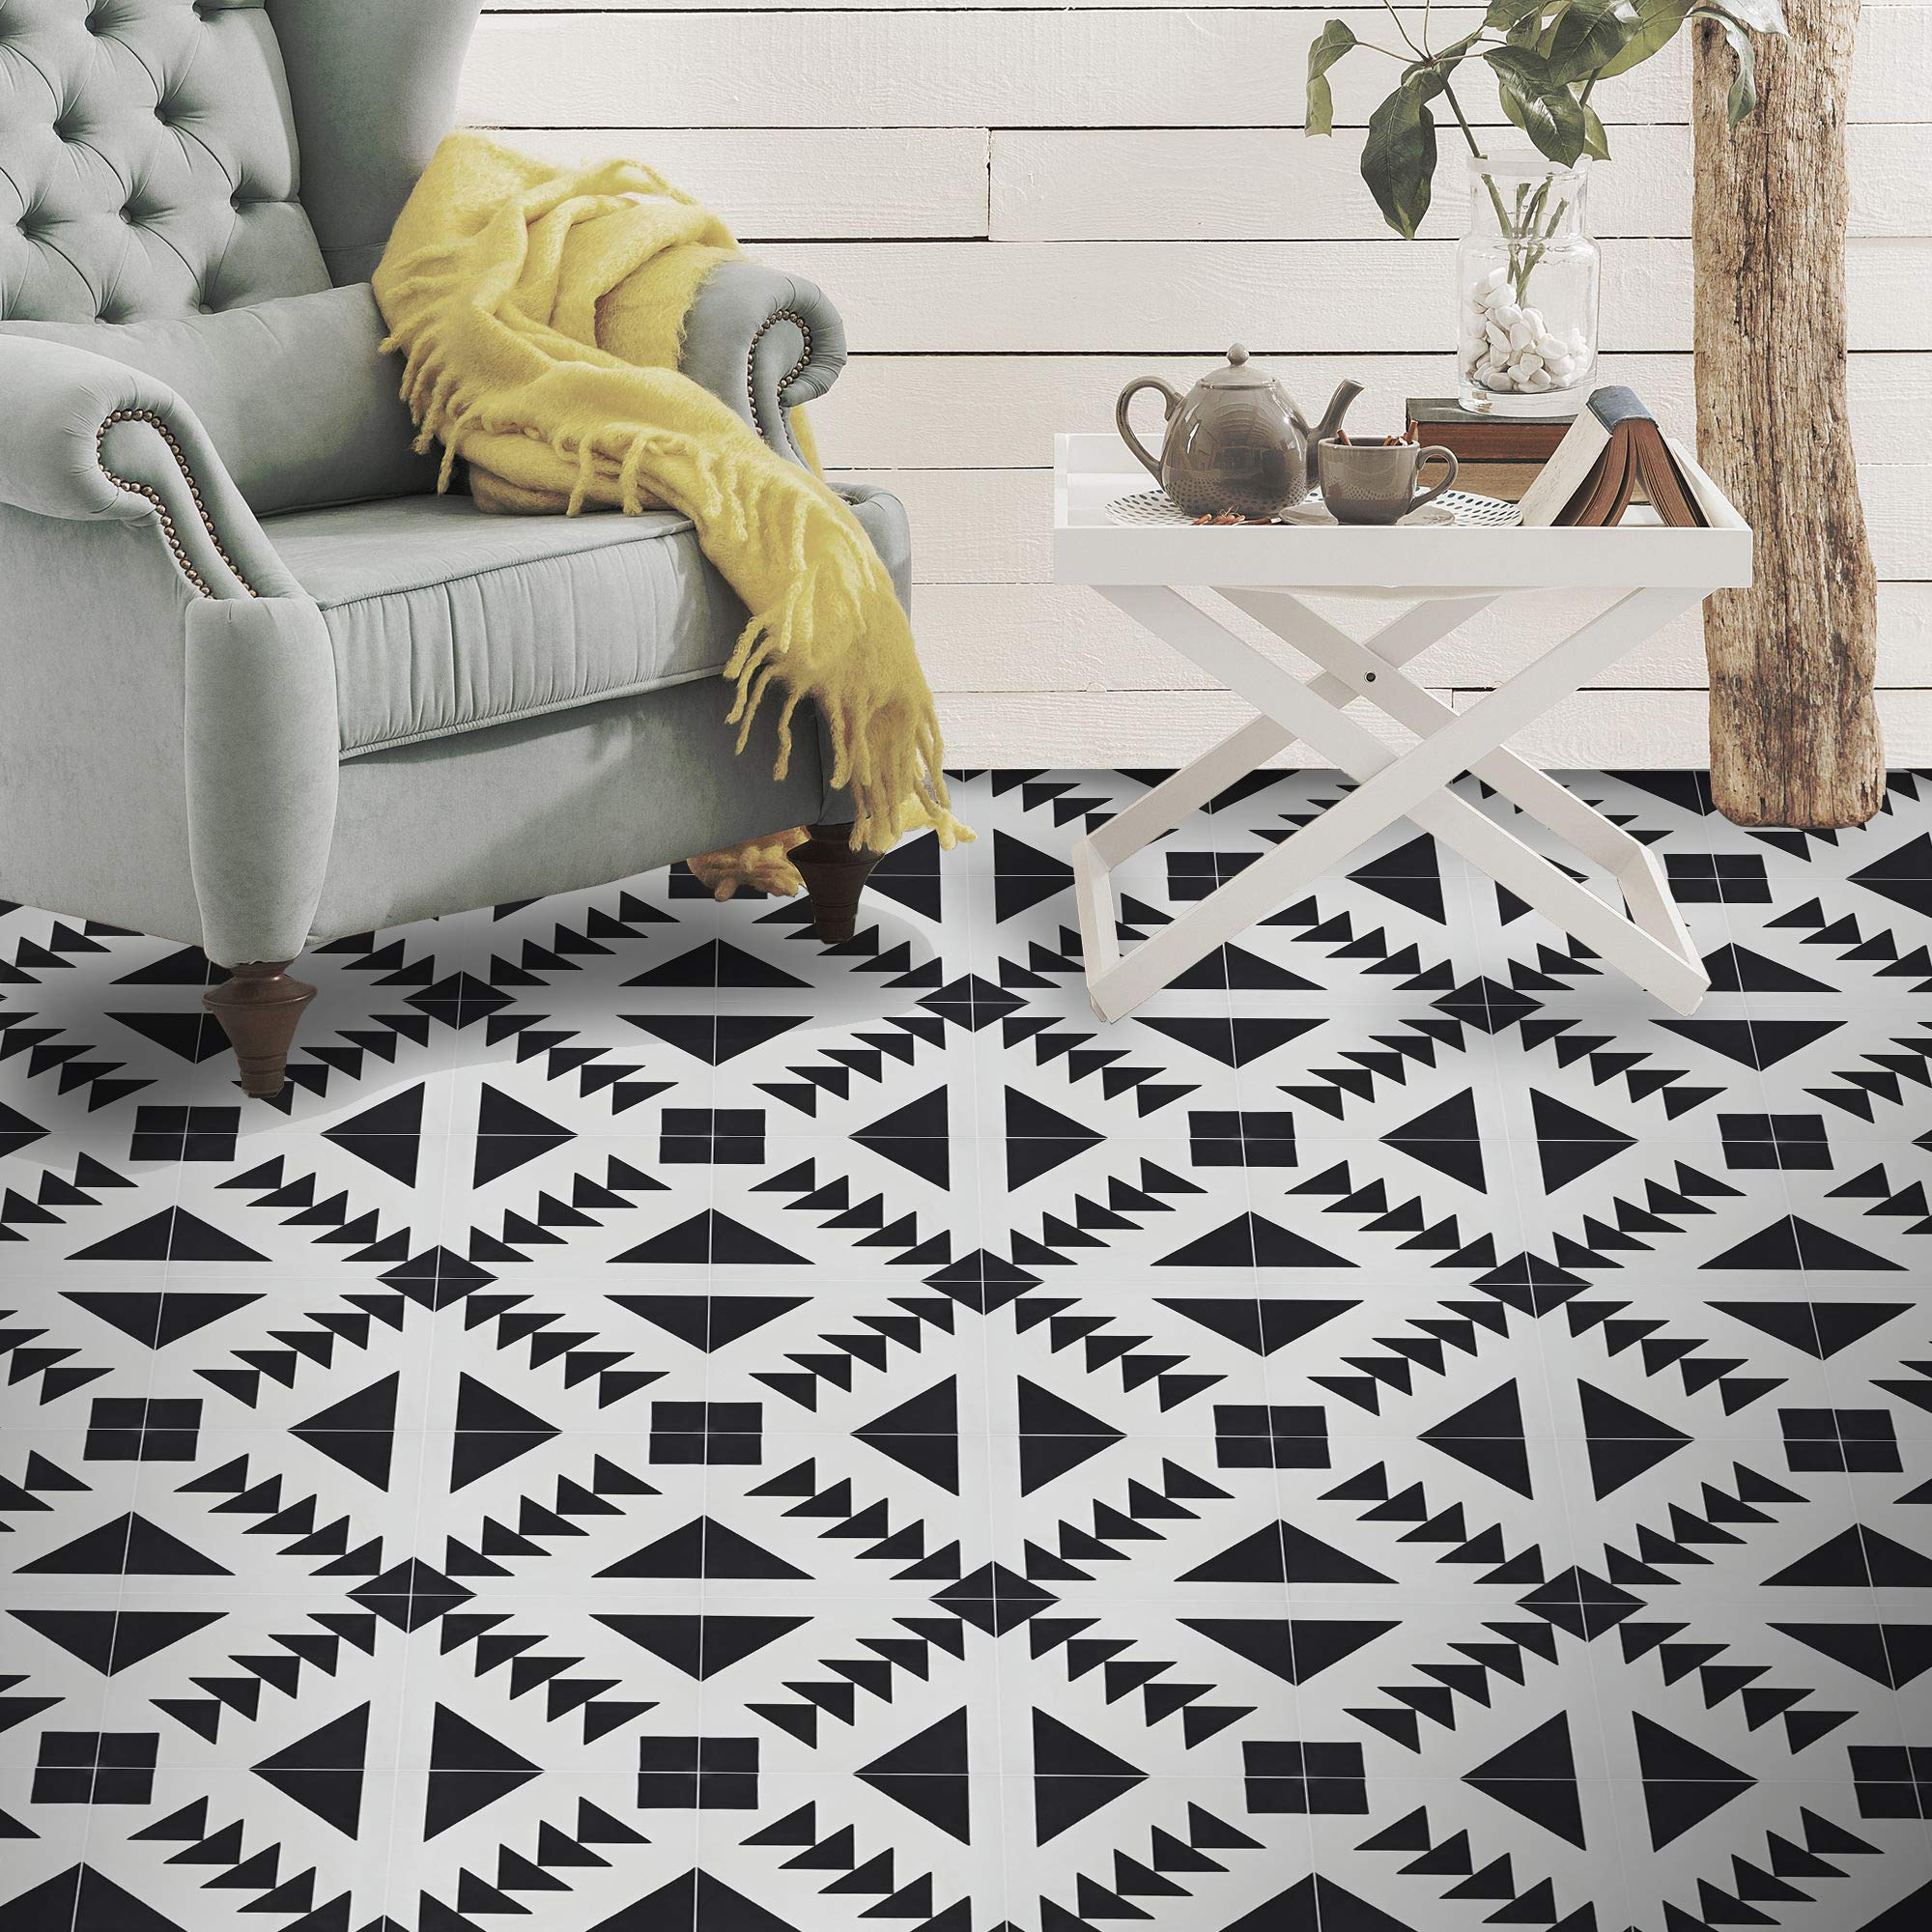 Moroccan Mosaic & Tile House CTP60-01 Tadla Handmade Cement Tile in Black and White, Pack of 12 8''x8'',